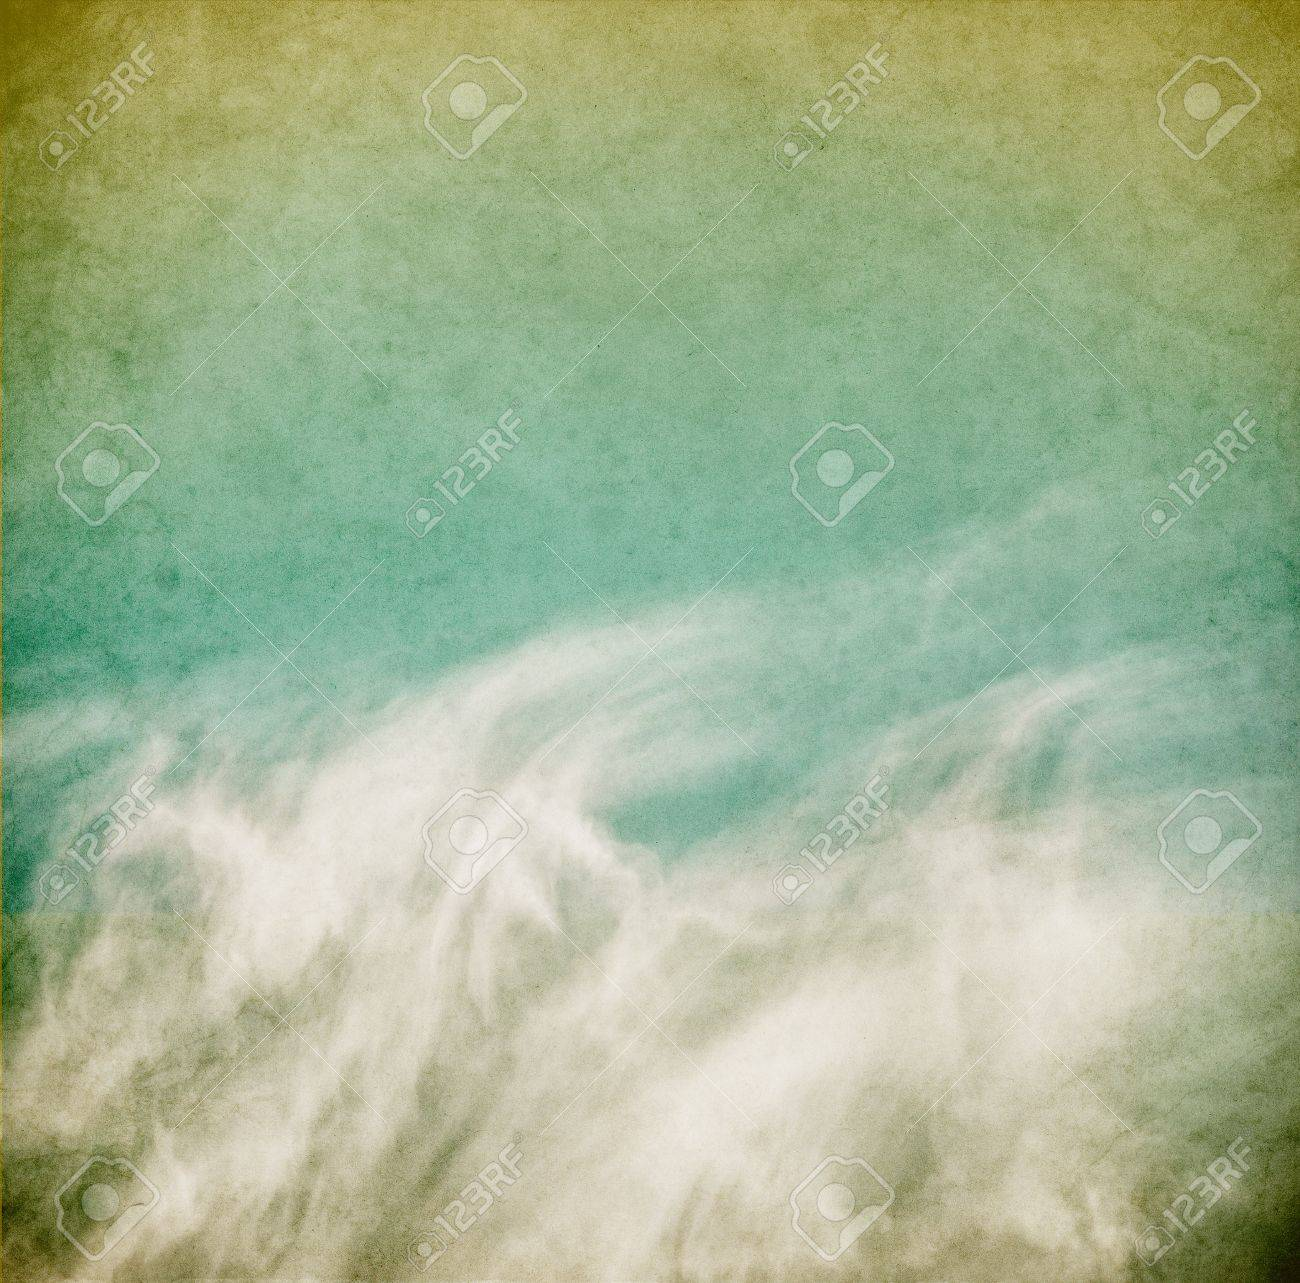 Wispy spring clouds on a textured, vintage paper background with grunge stains. Stock Photo - 12782122